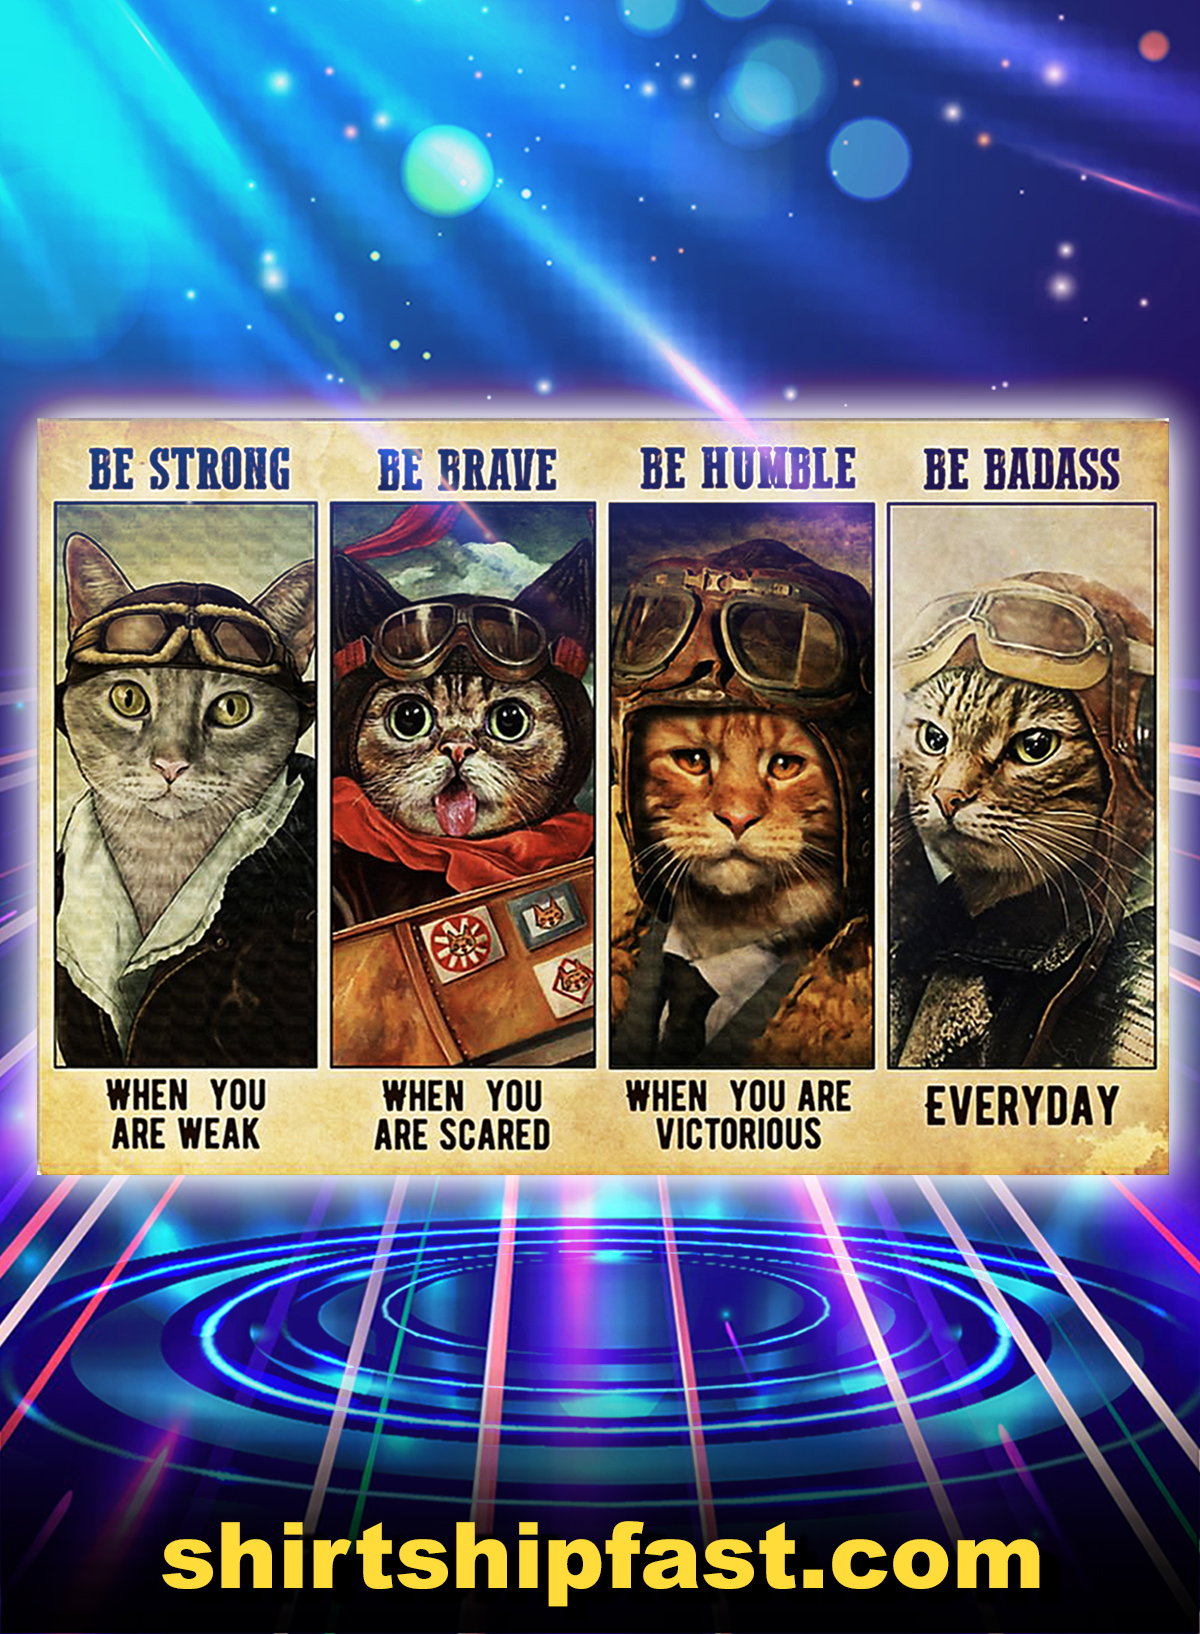 Be strong be brave be humble be badass cat pilot poster - A1